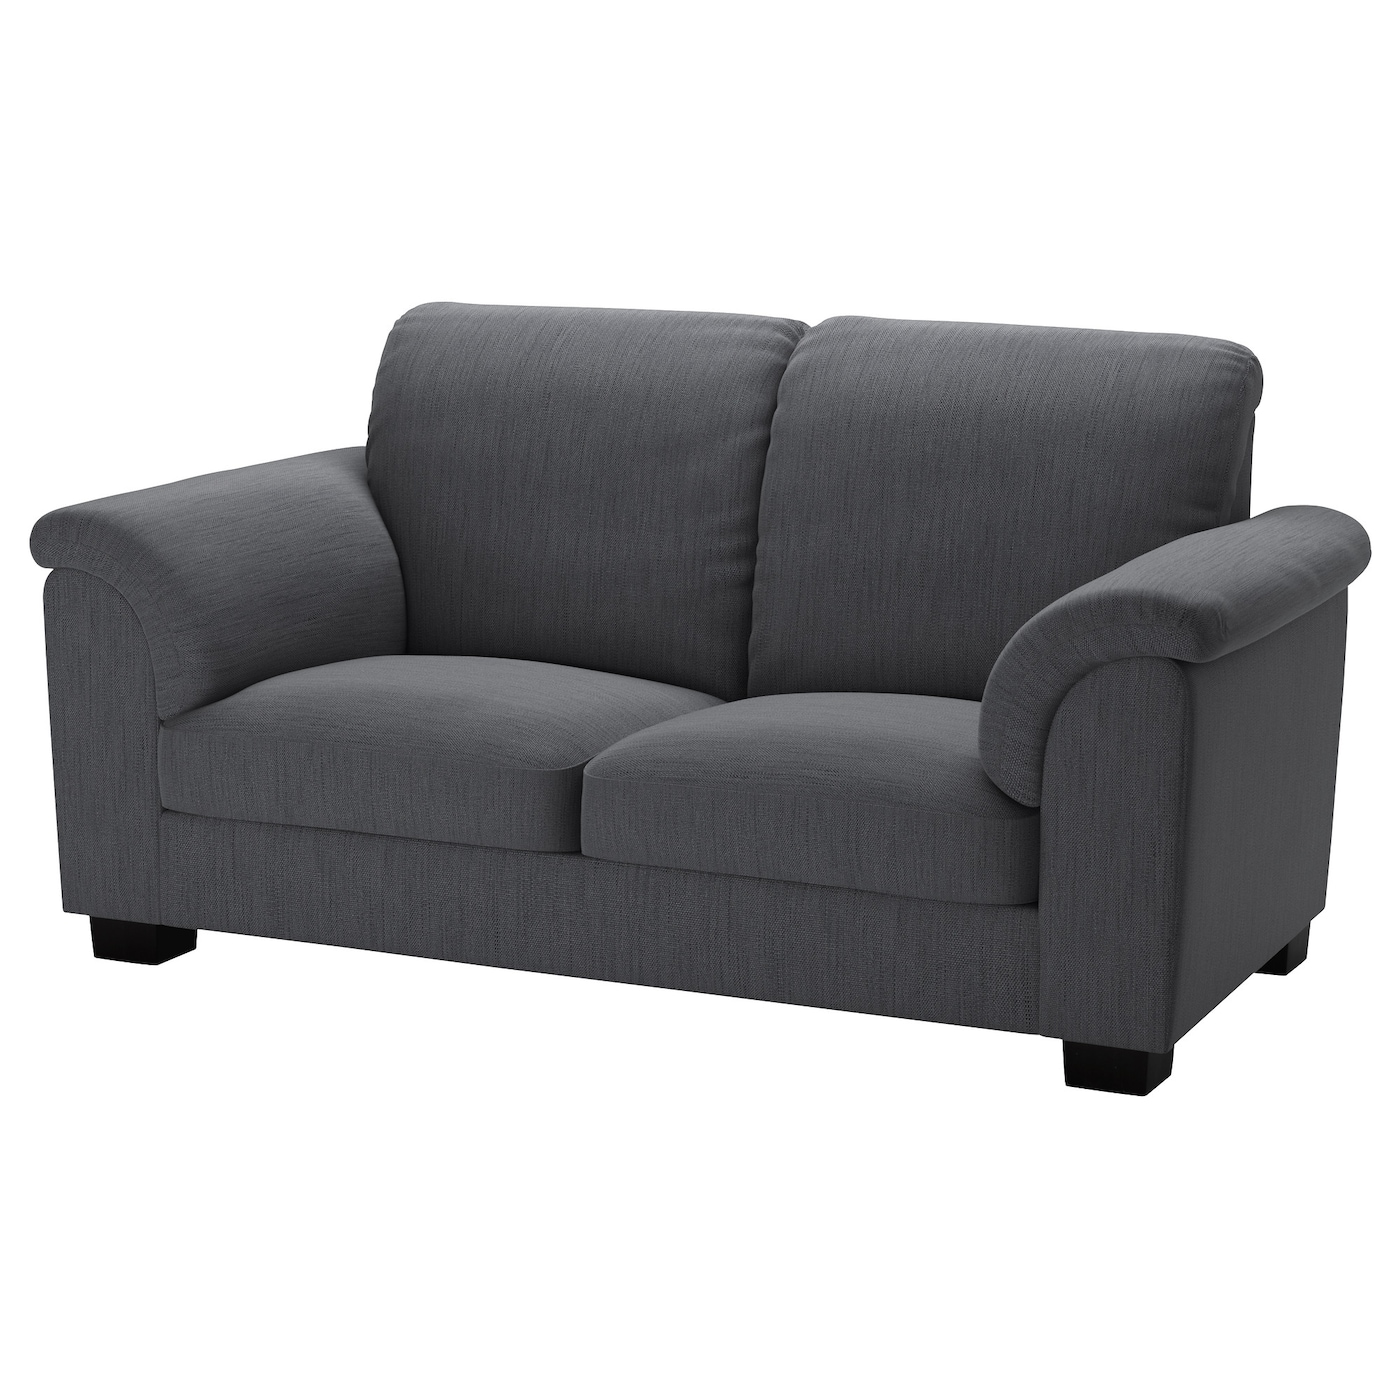 Sofas settees couches more ikea for Sofa 170 cm breit